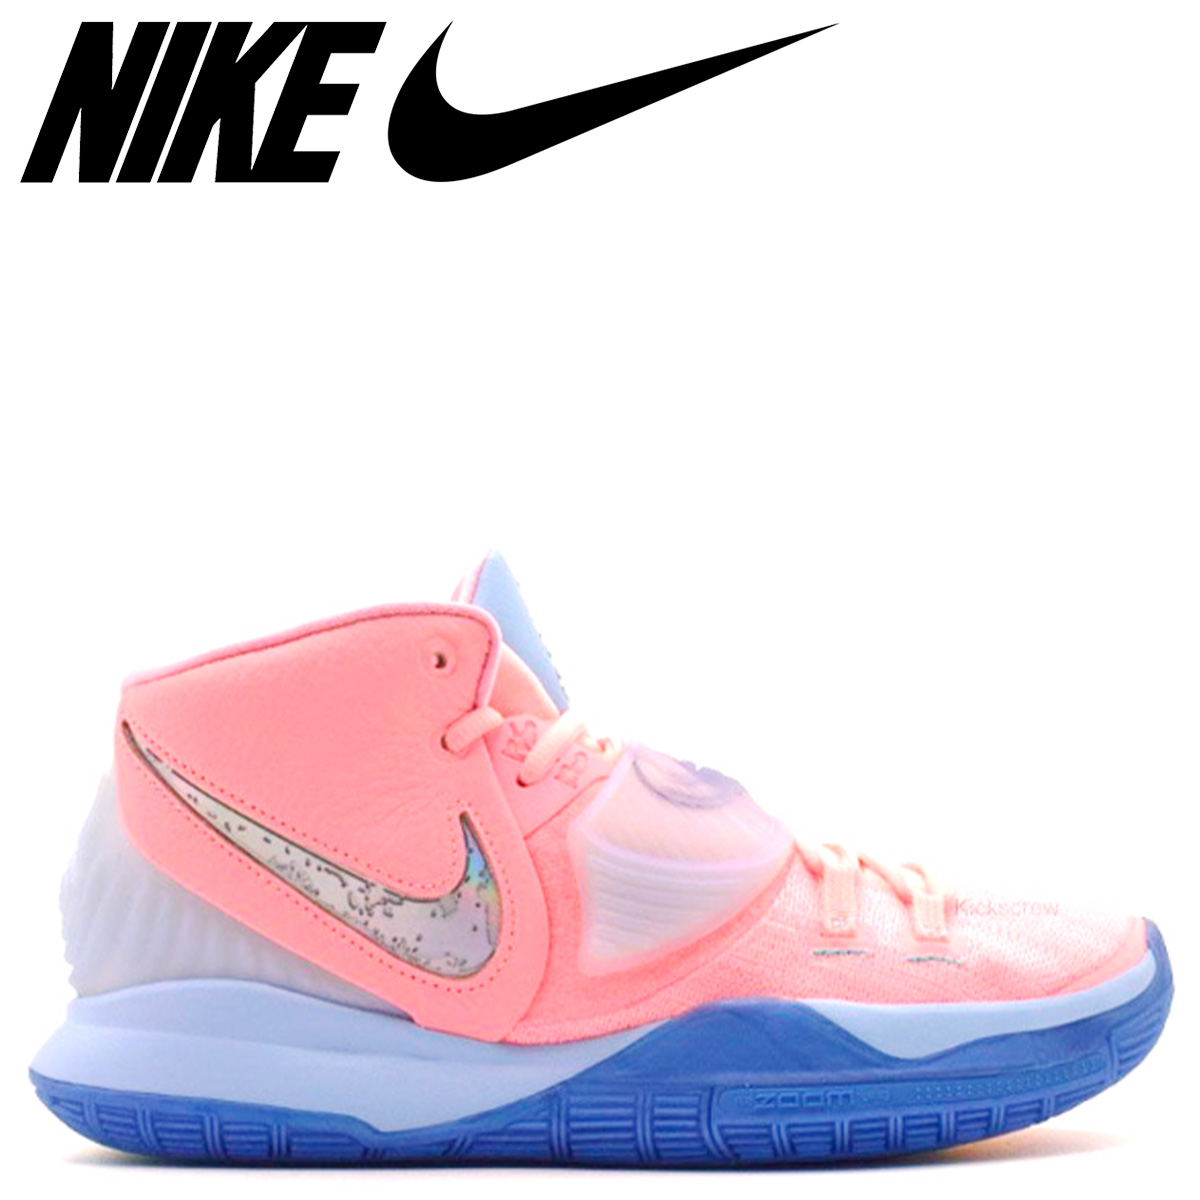 NIKE ナイキ カイリー 6 コンセプツ EP スニーカー メンズ KYRIE 6 CNCPTS EP ピンク CU8880-600 【zzi】 【返品不可】